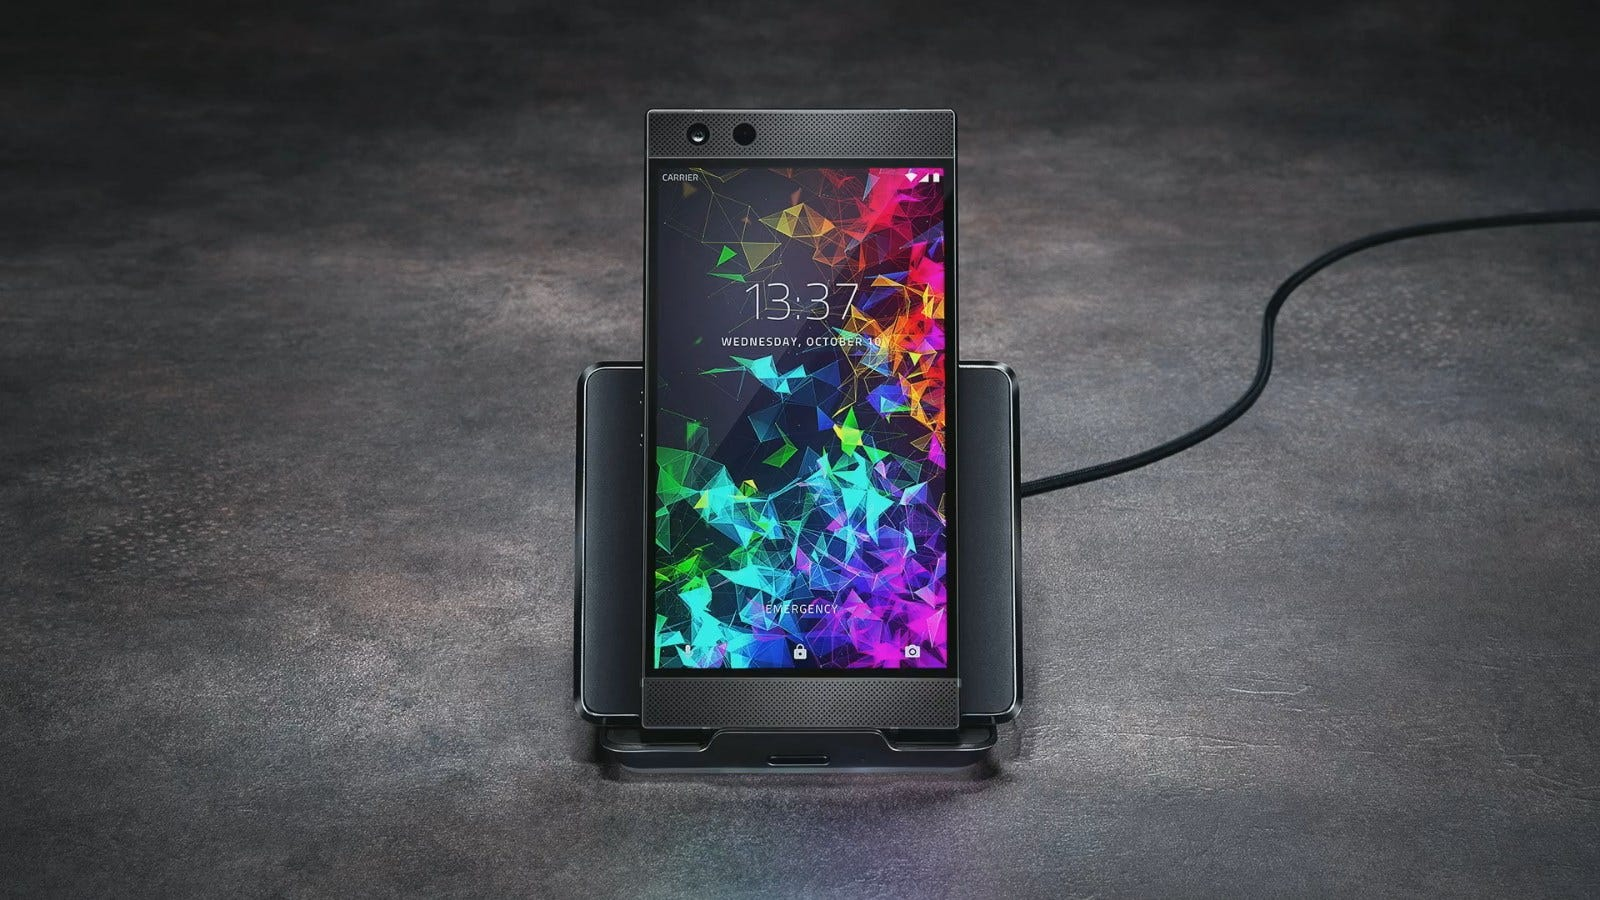 razer, razer phone, razer phone 2, rgb, chroma, wireless charger,